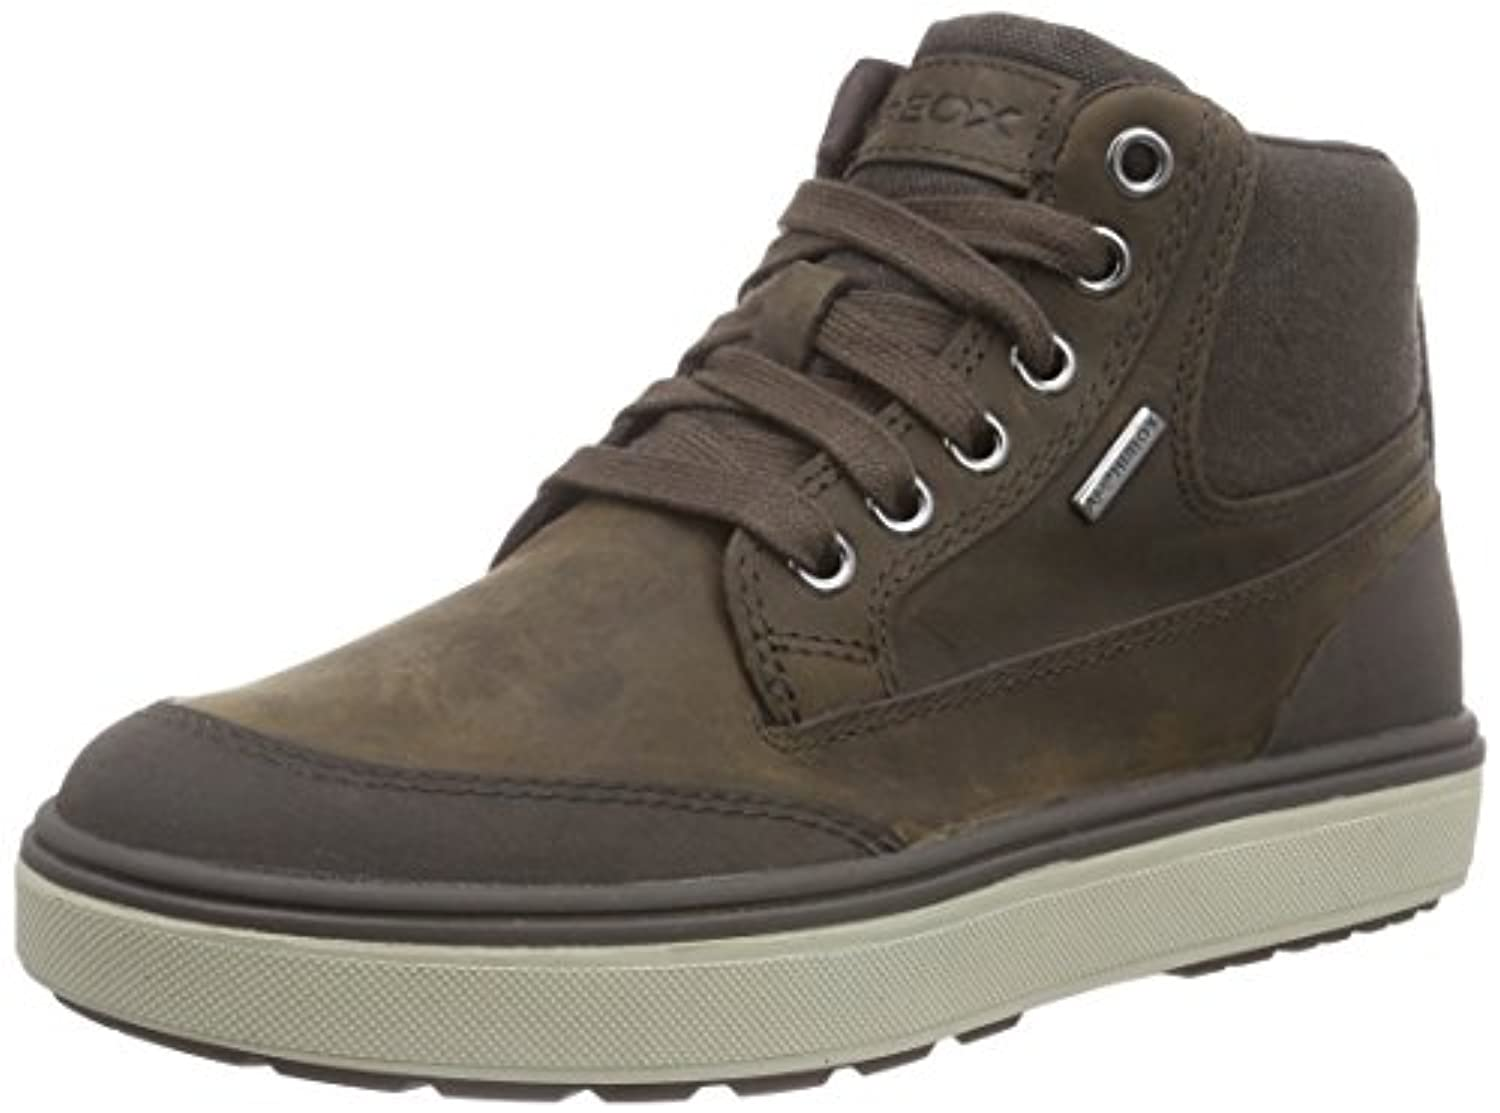 Geox J Mattias Amphibiox, Boys' Hi-Top Sneakers, Brown (Dark Brown), 1 UK (33 EU)